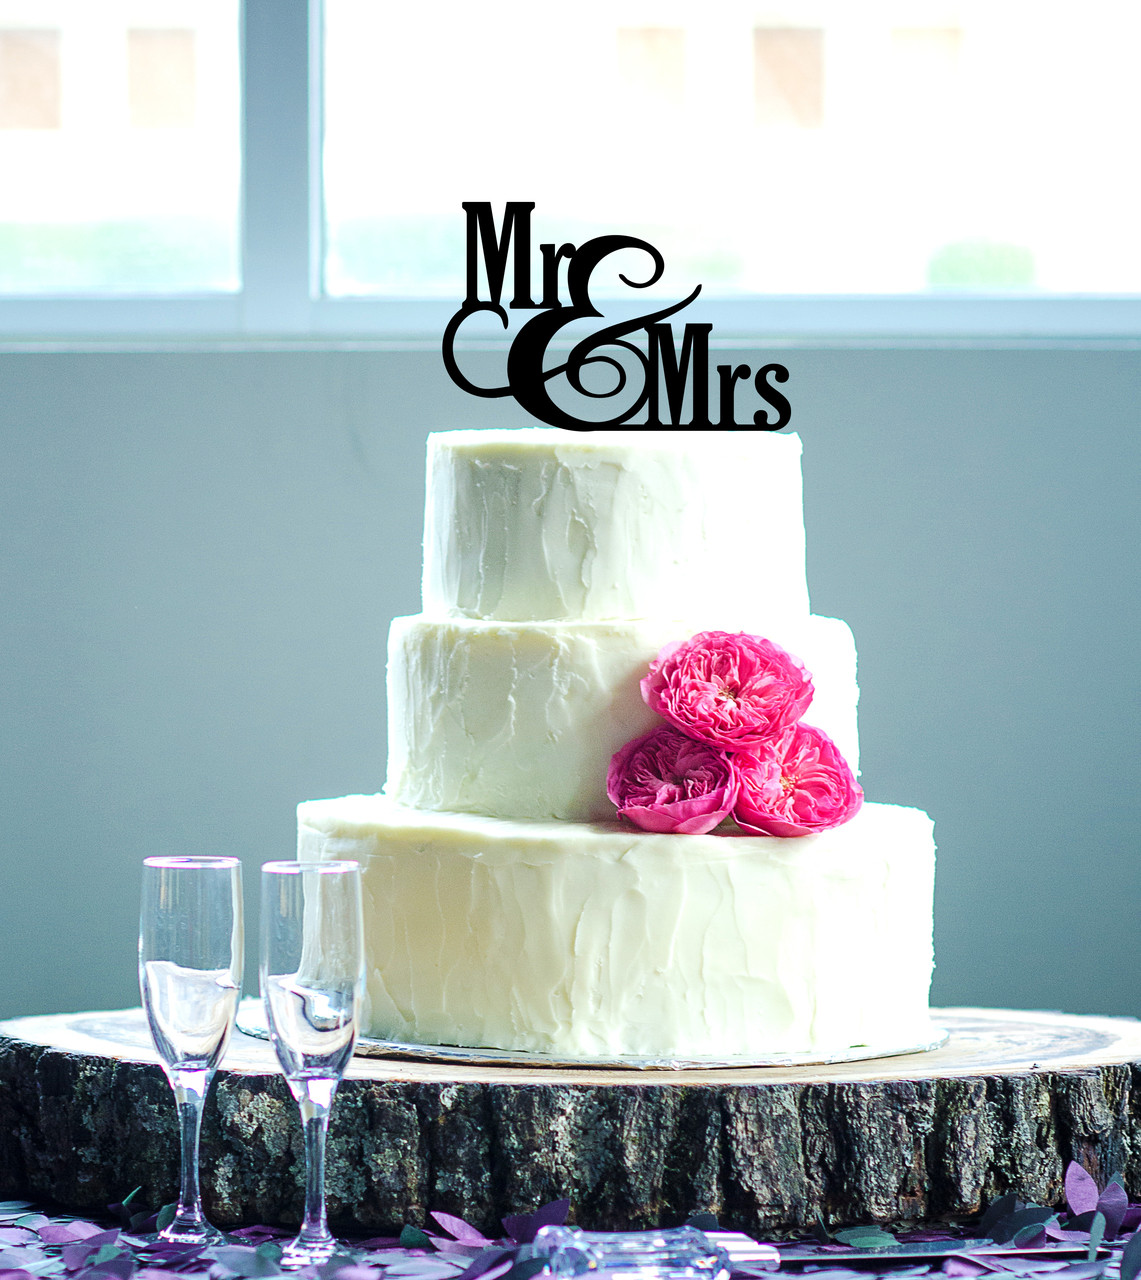 LUX - Personalized Cake Topper - Mr & Mrs